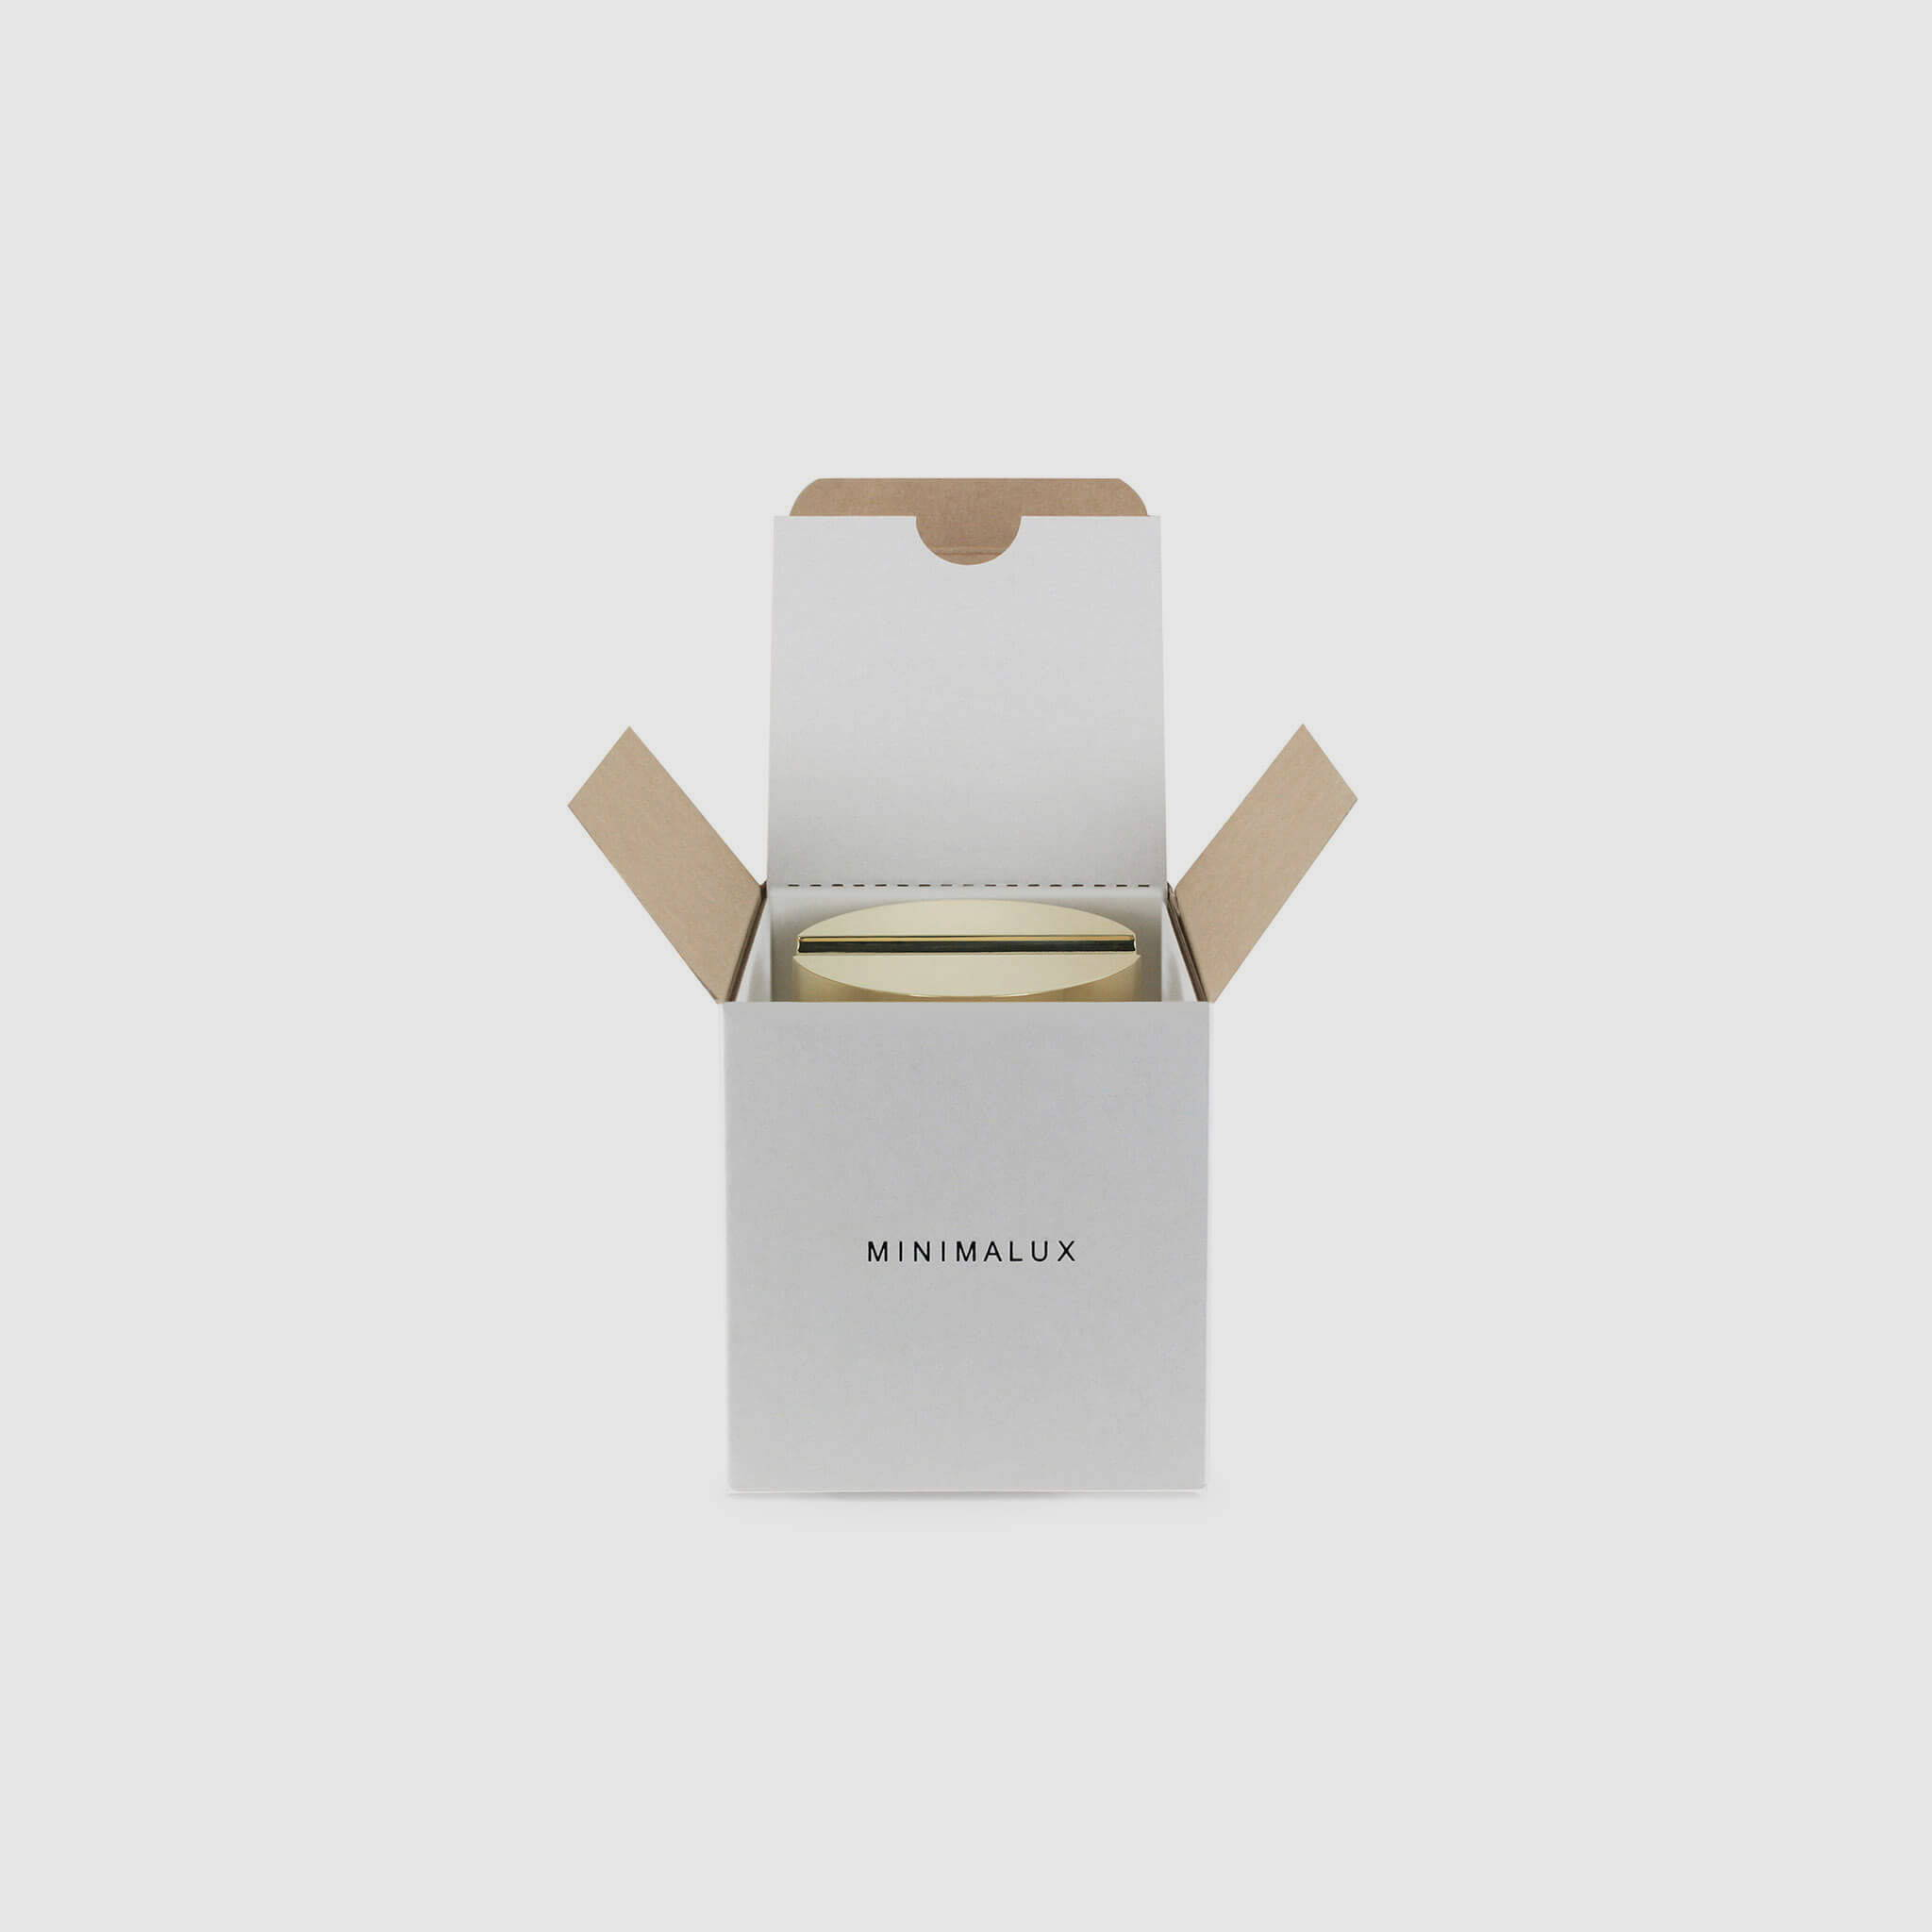 Pen Rest packaging